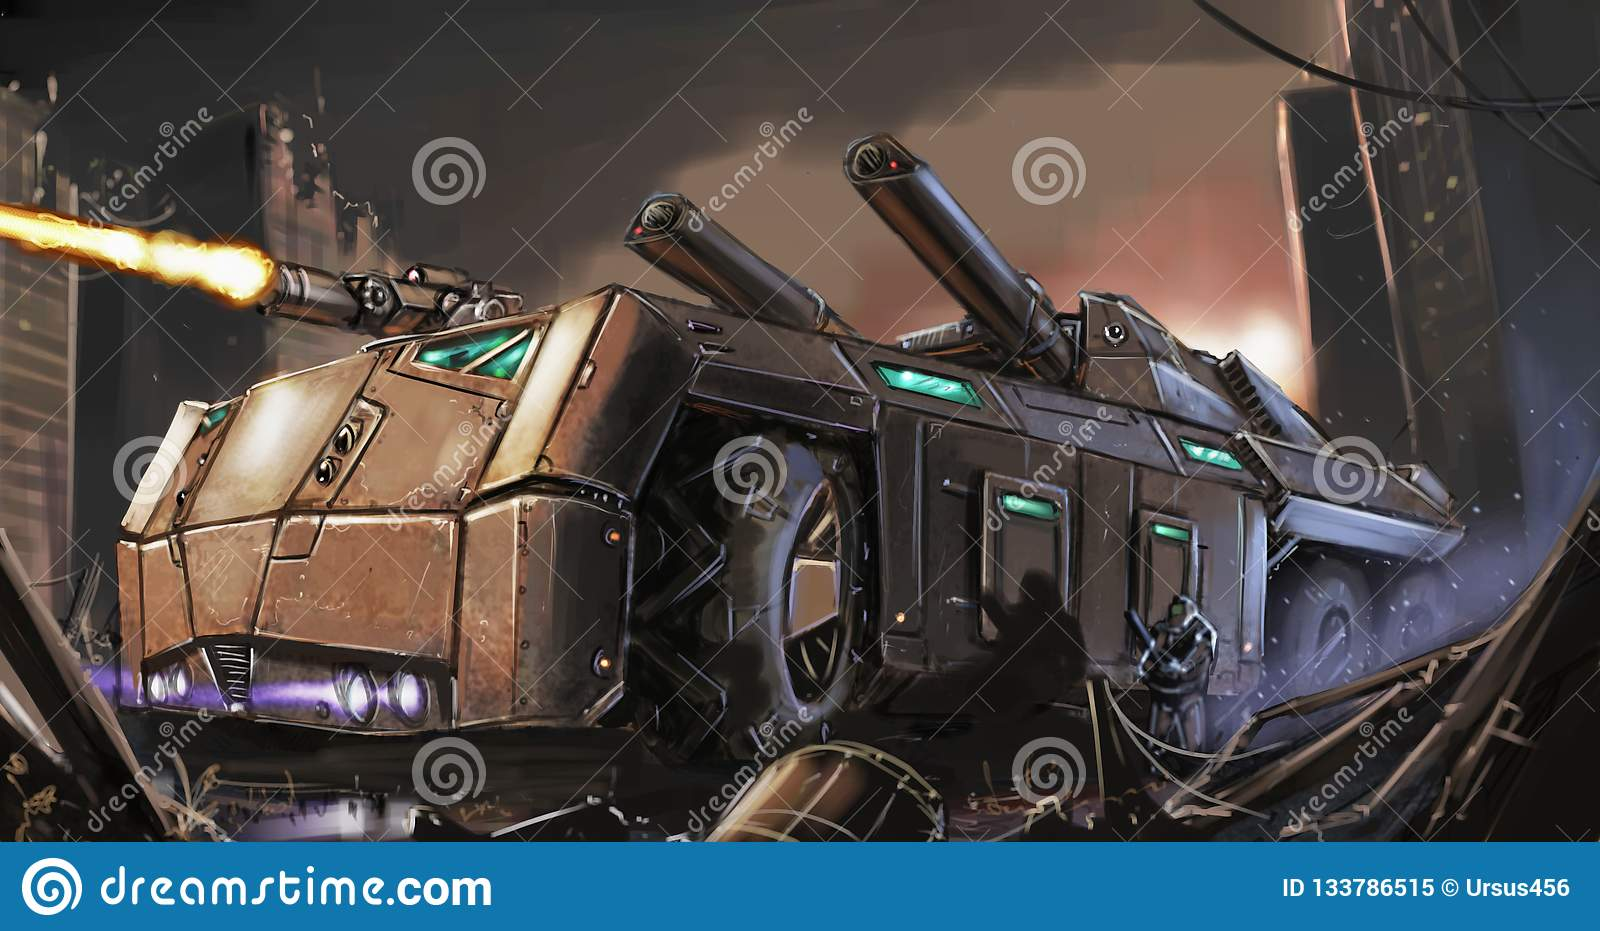 Concept Art Painting Of Post Apocalyptic Armored Vehicle Or